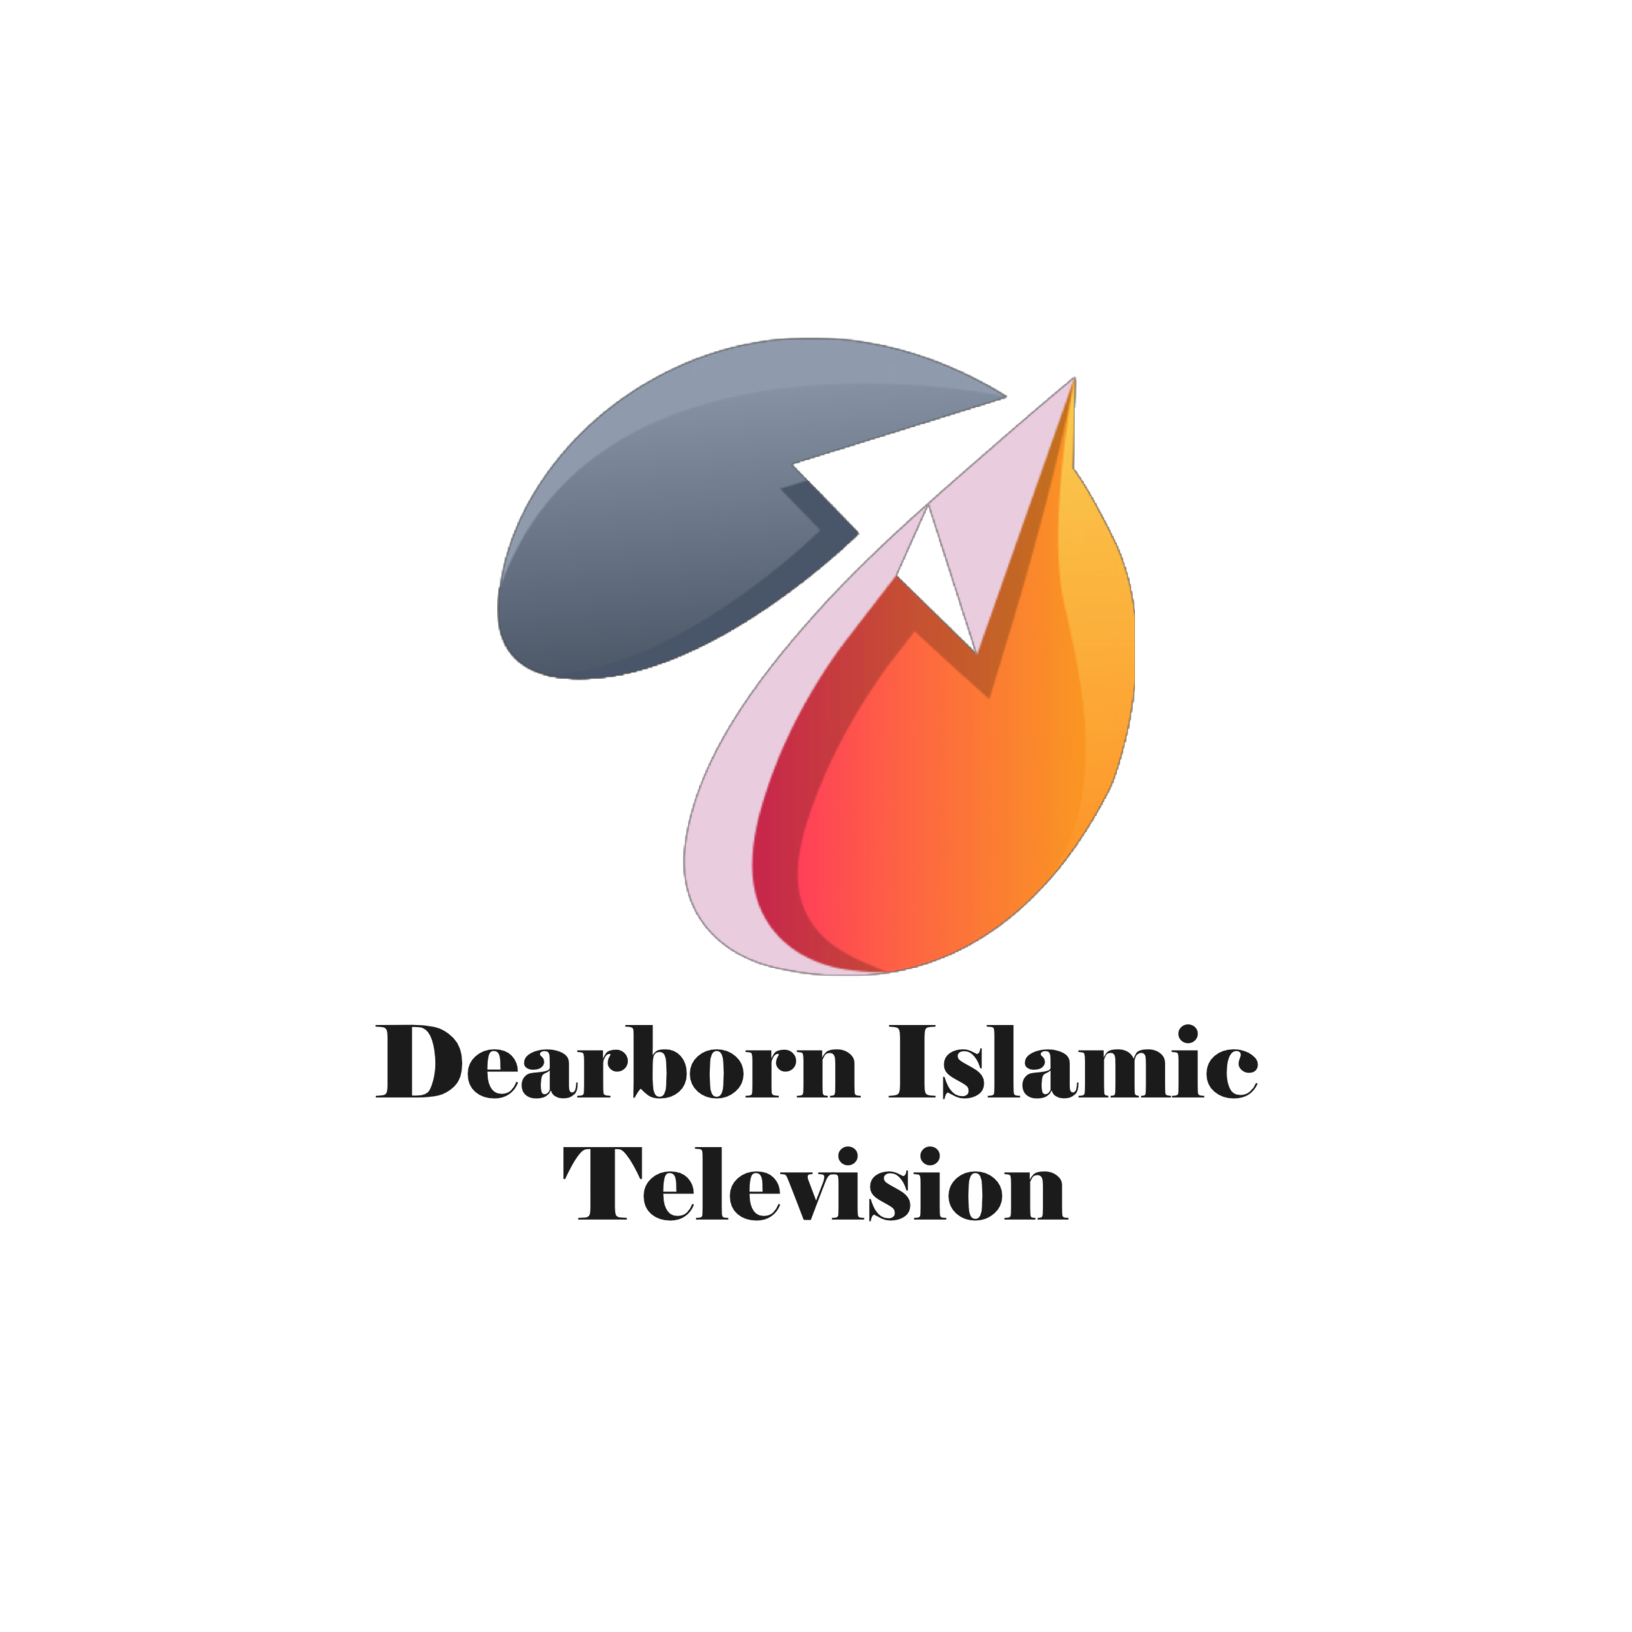 Dearborn Islamic Radio